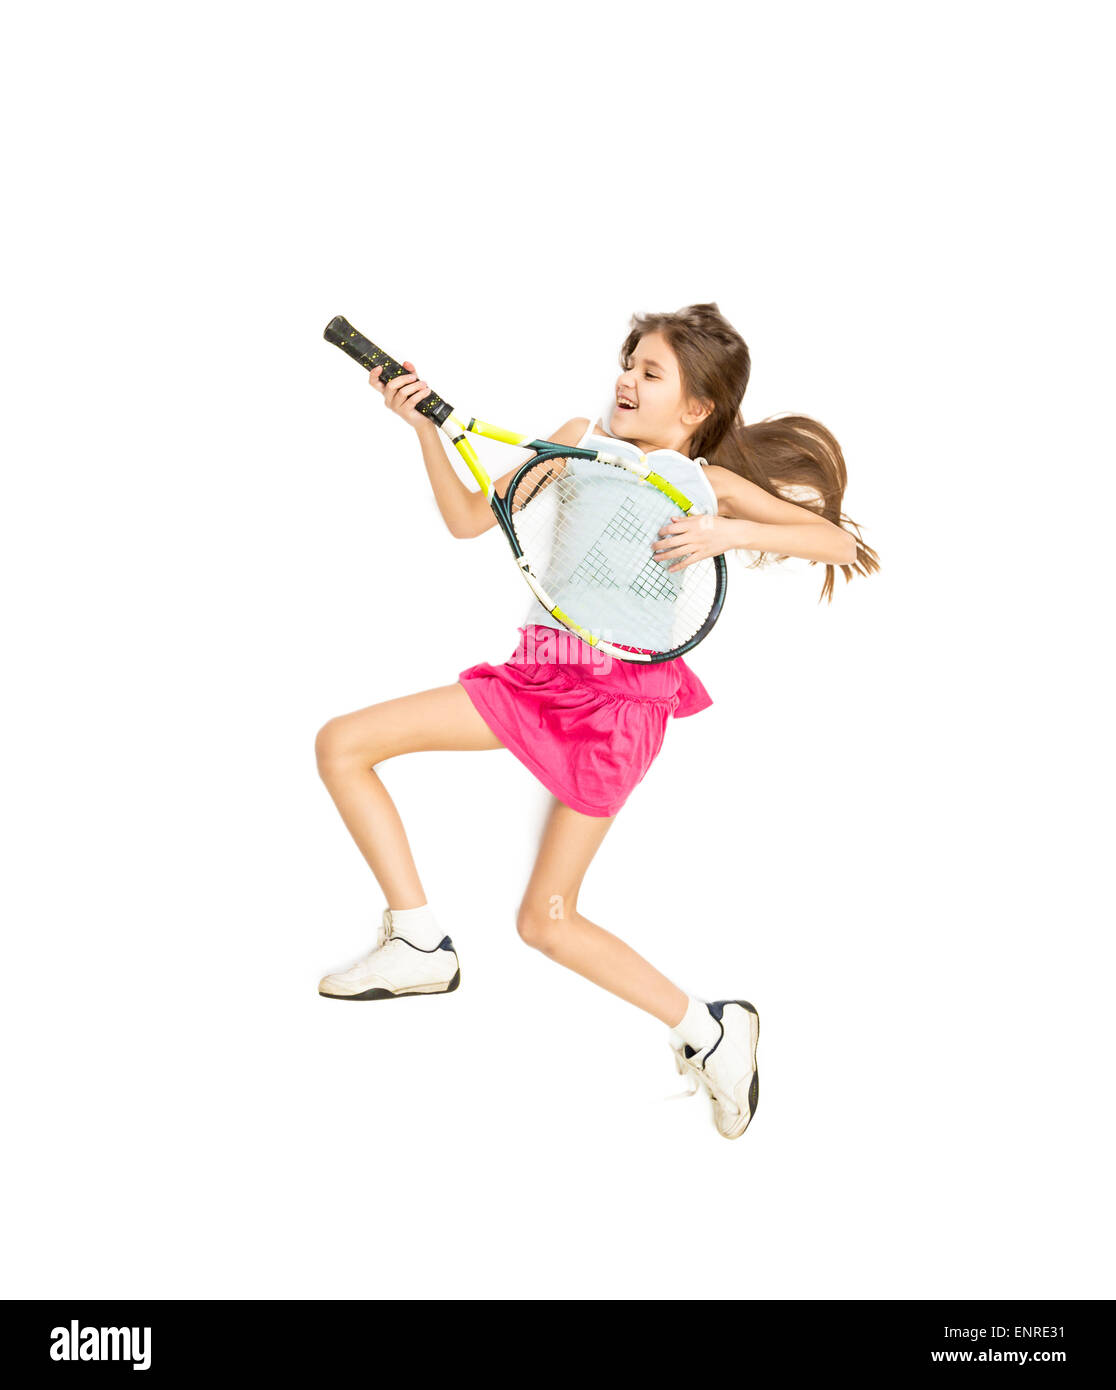 Isolated photo of happy smiling girl playing on tennis racket as on guitar - Stock Image